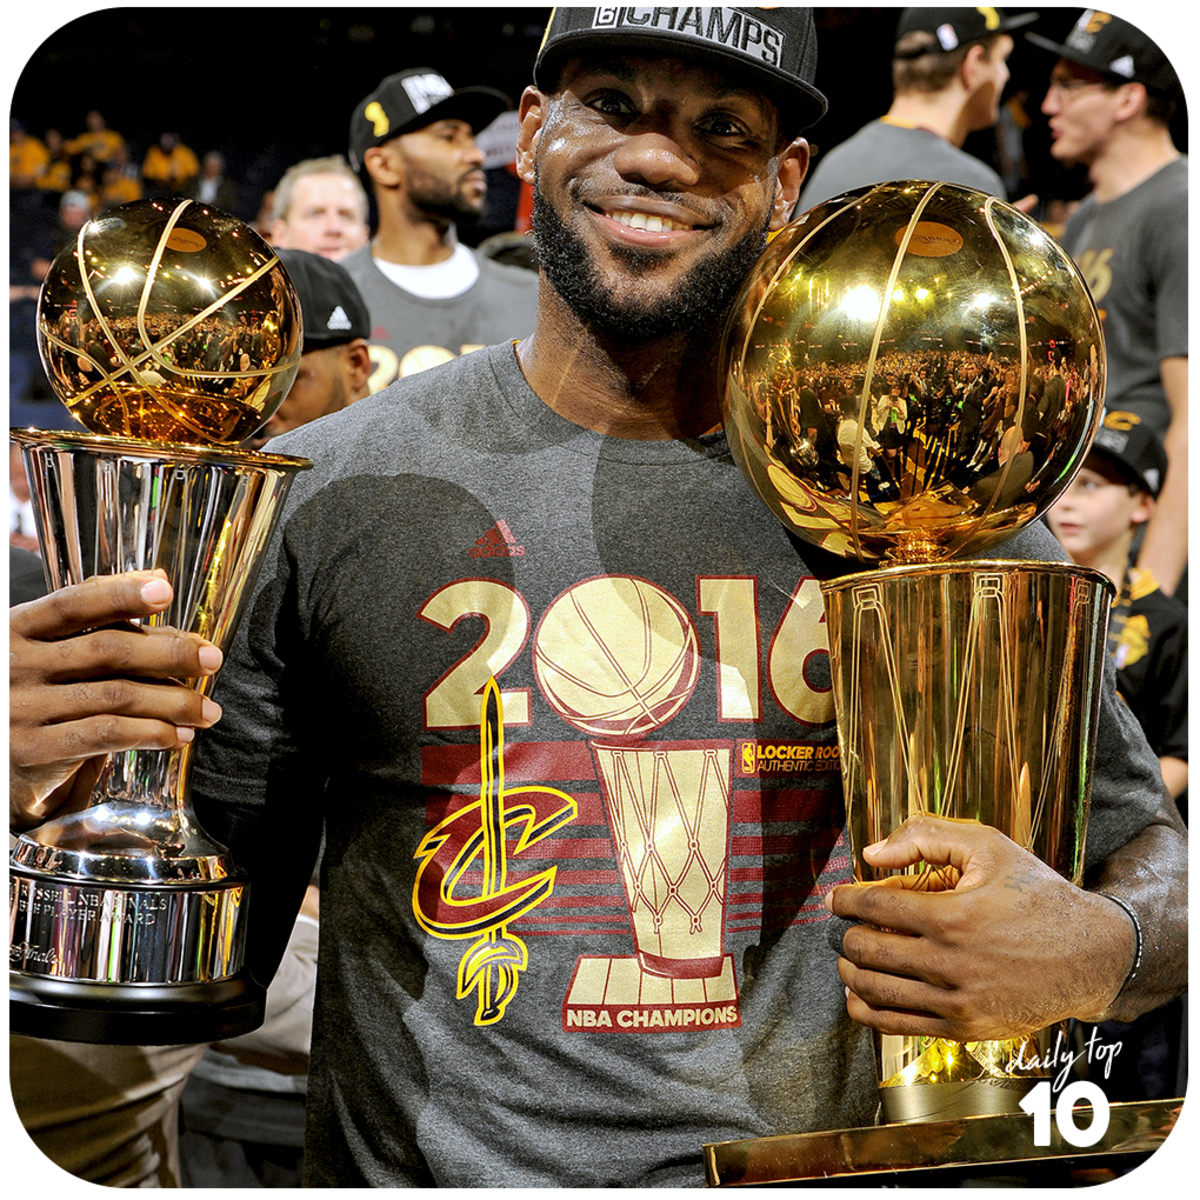 Lebron James winning the 2016 NBA Finals MVP and Championship.